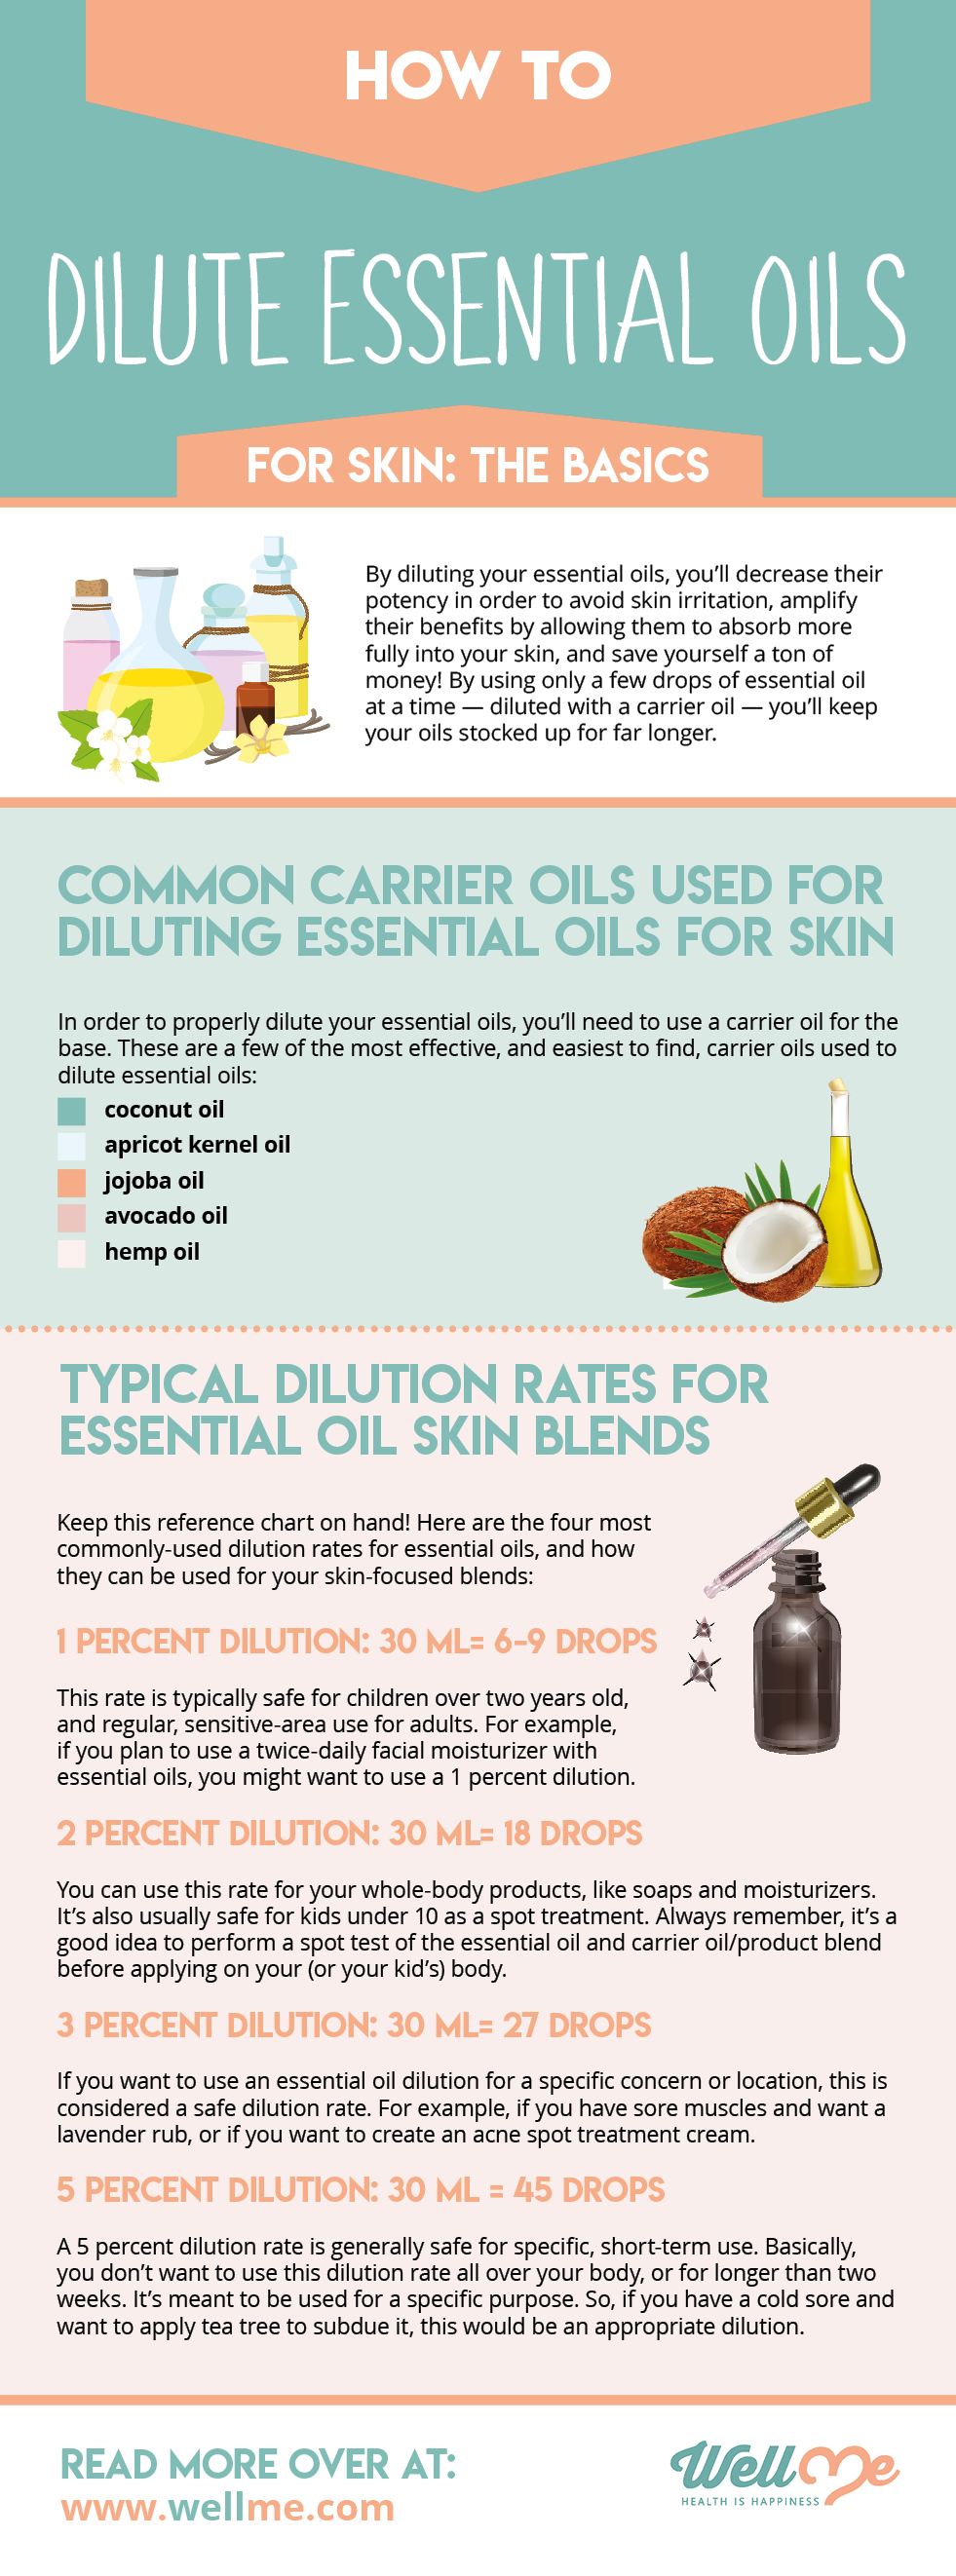 How to Dilute Essential Oils for Skin: The Basics infographic